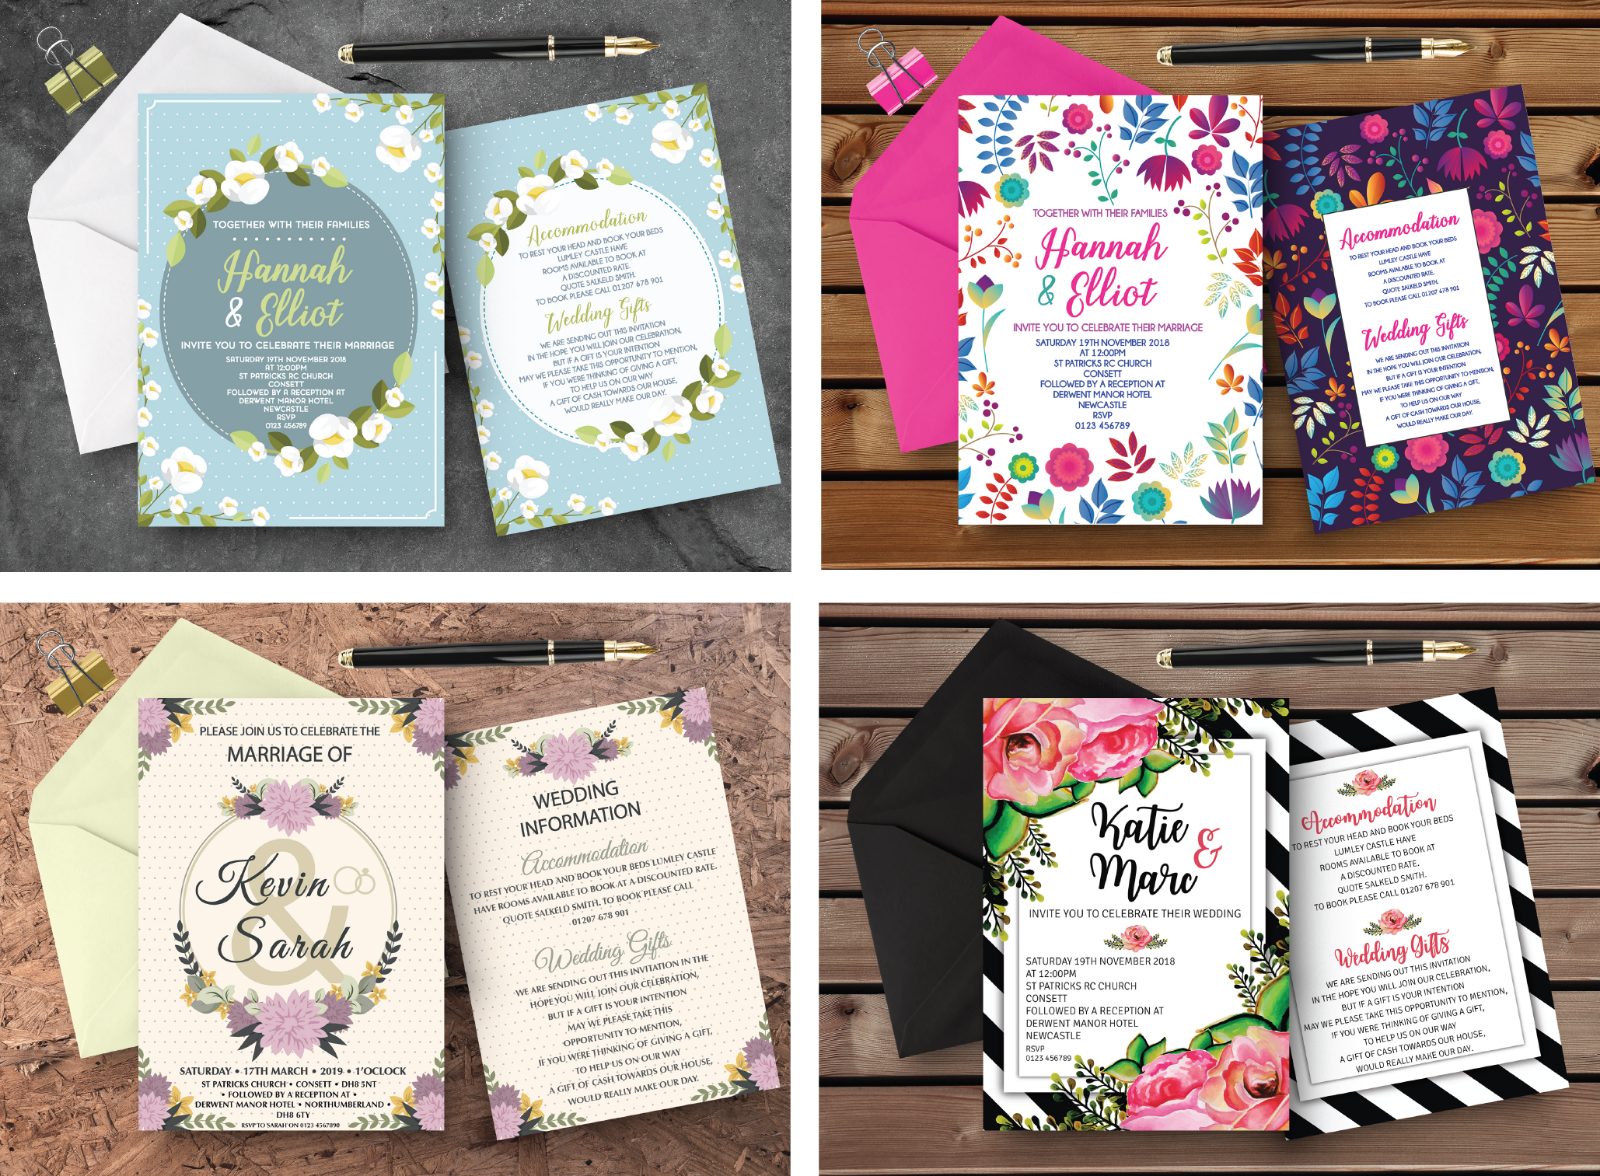 Personalised Wedding Day   Evening Invitations with Envelopes